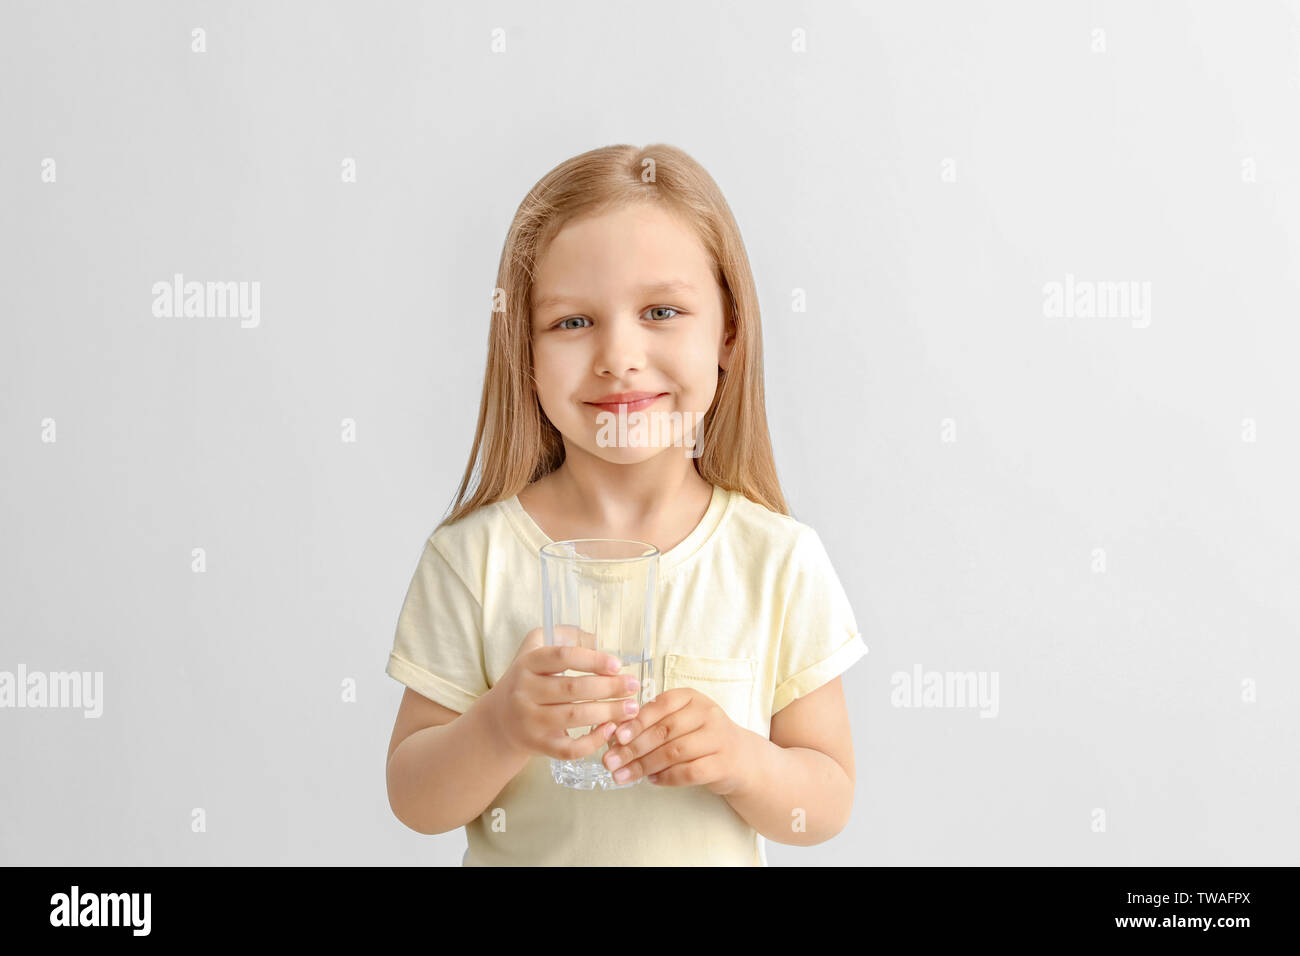 Cute little girl with glass of water on light background - Stock Image